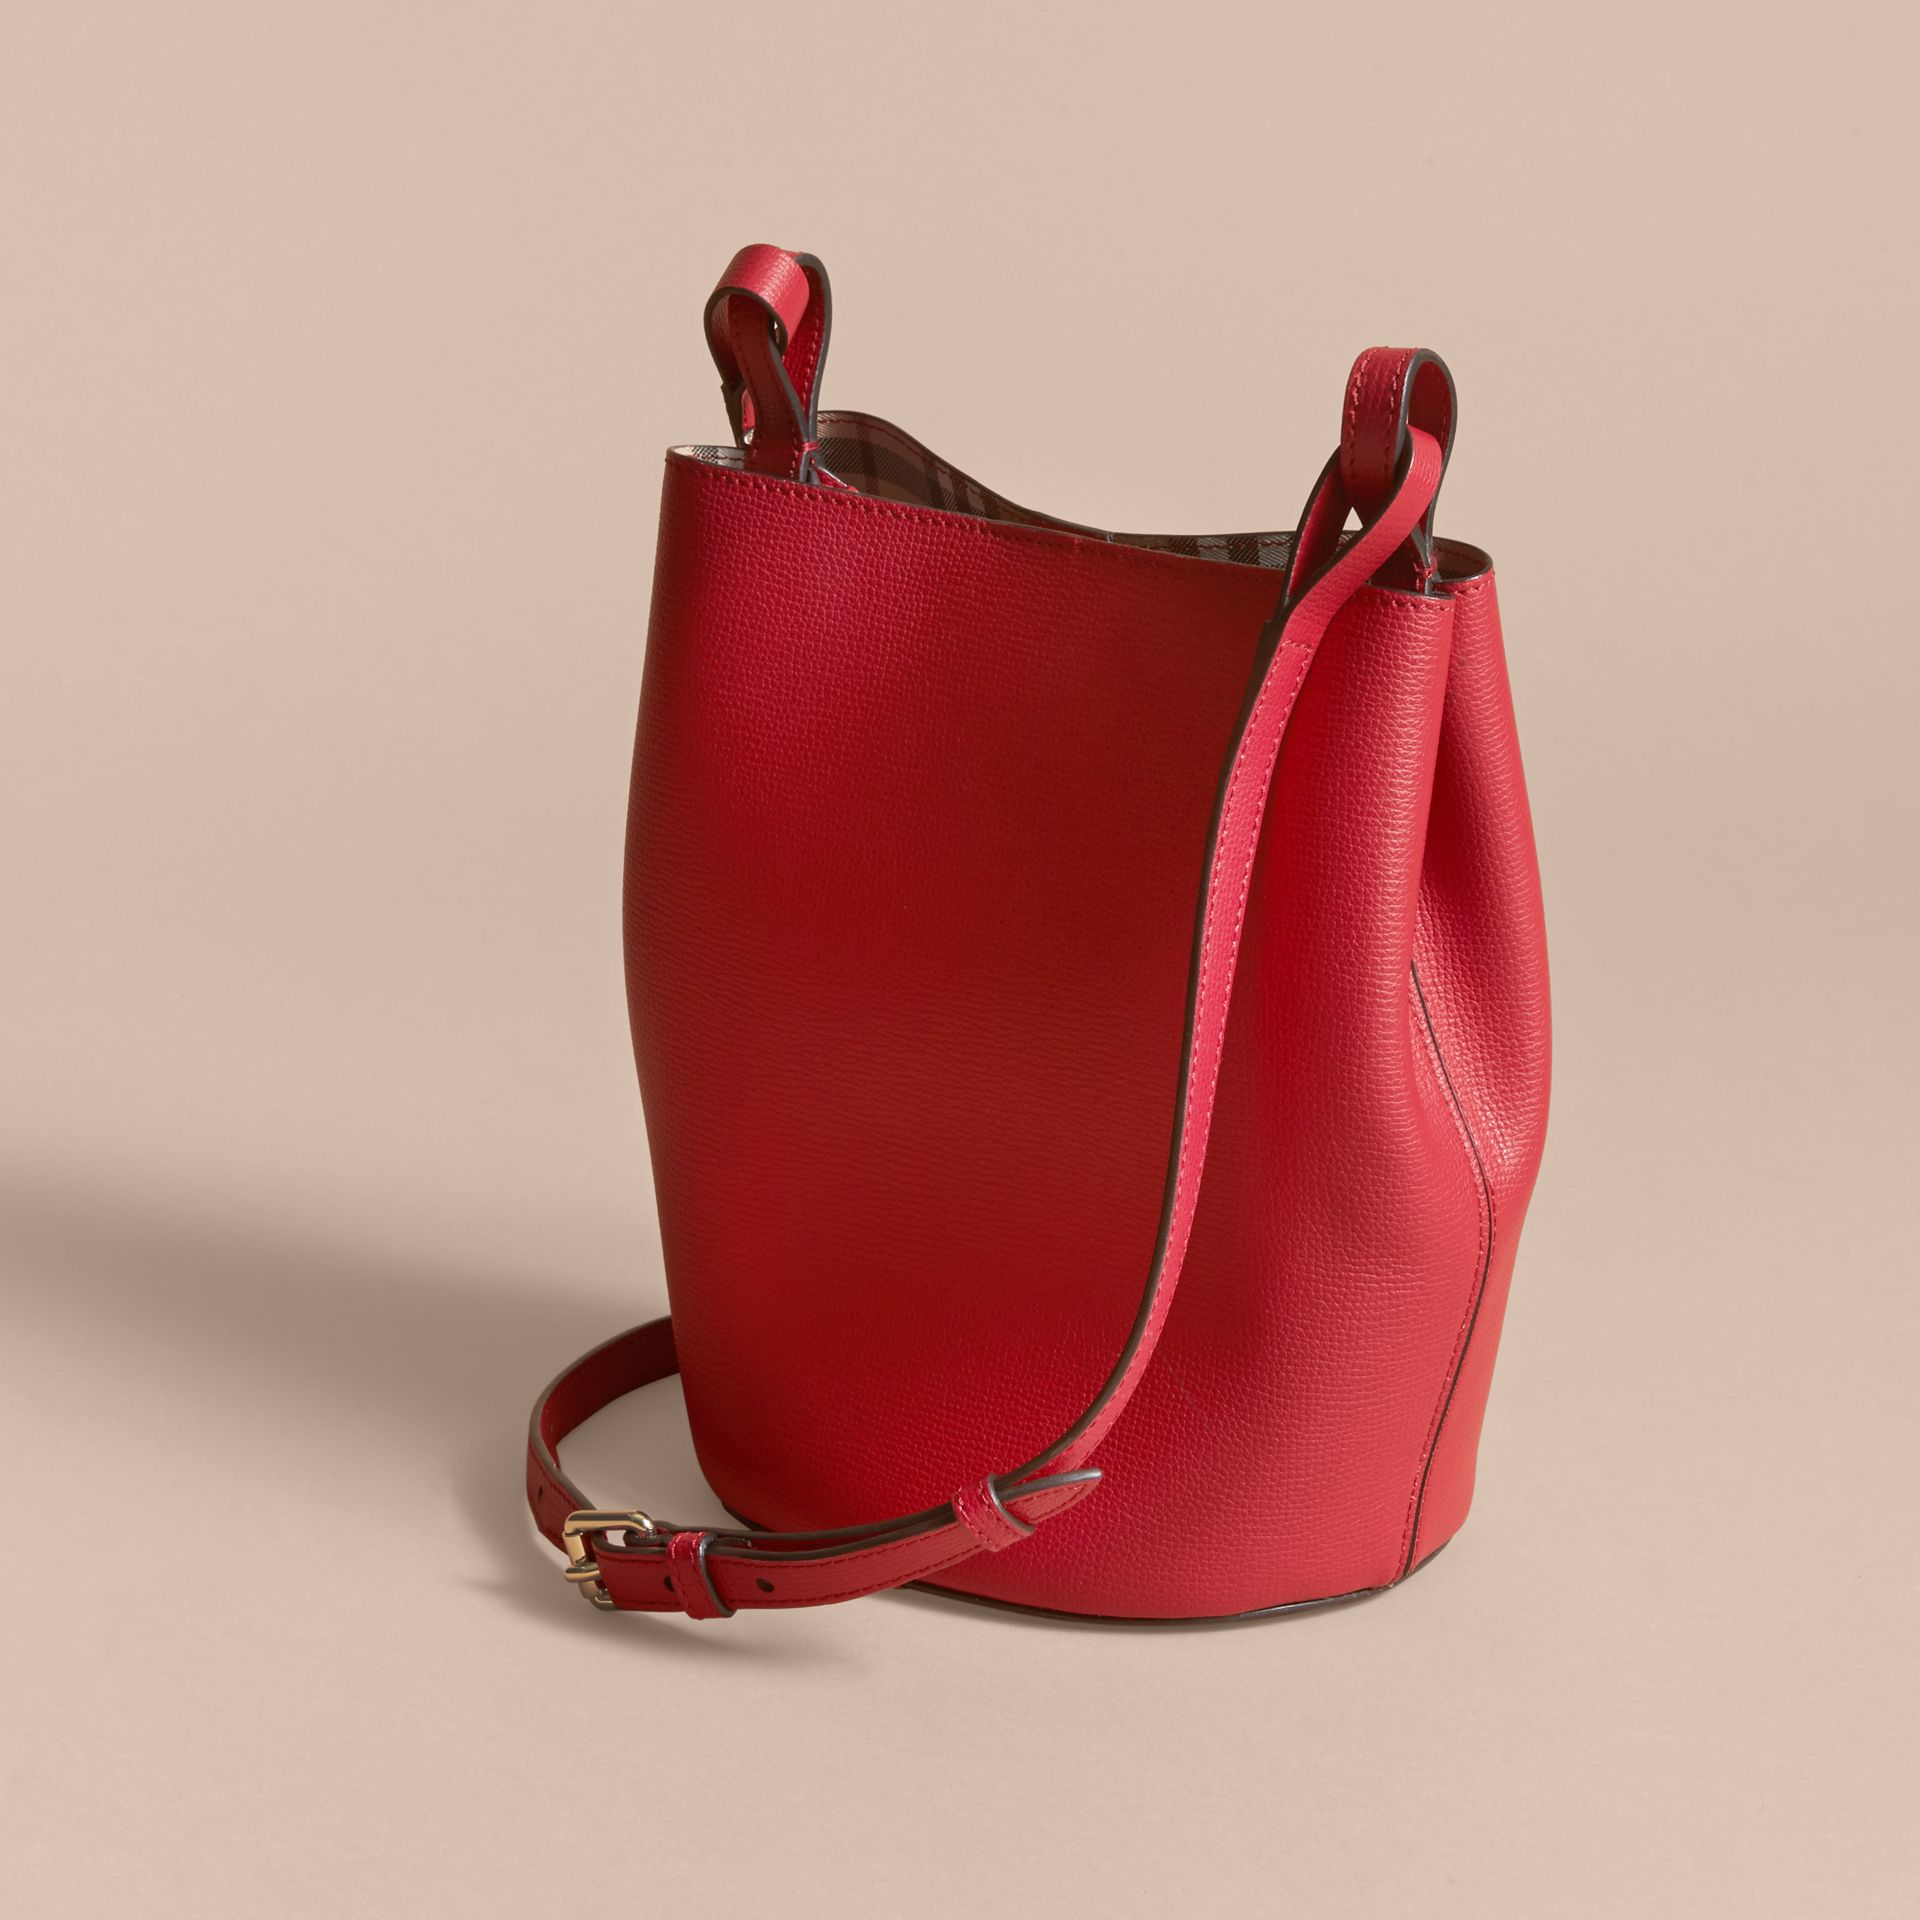 Leather and Haymarket Check Crossbody Bucket Bag in Poppy Red - Women | Burberry - gallery image 4